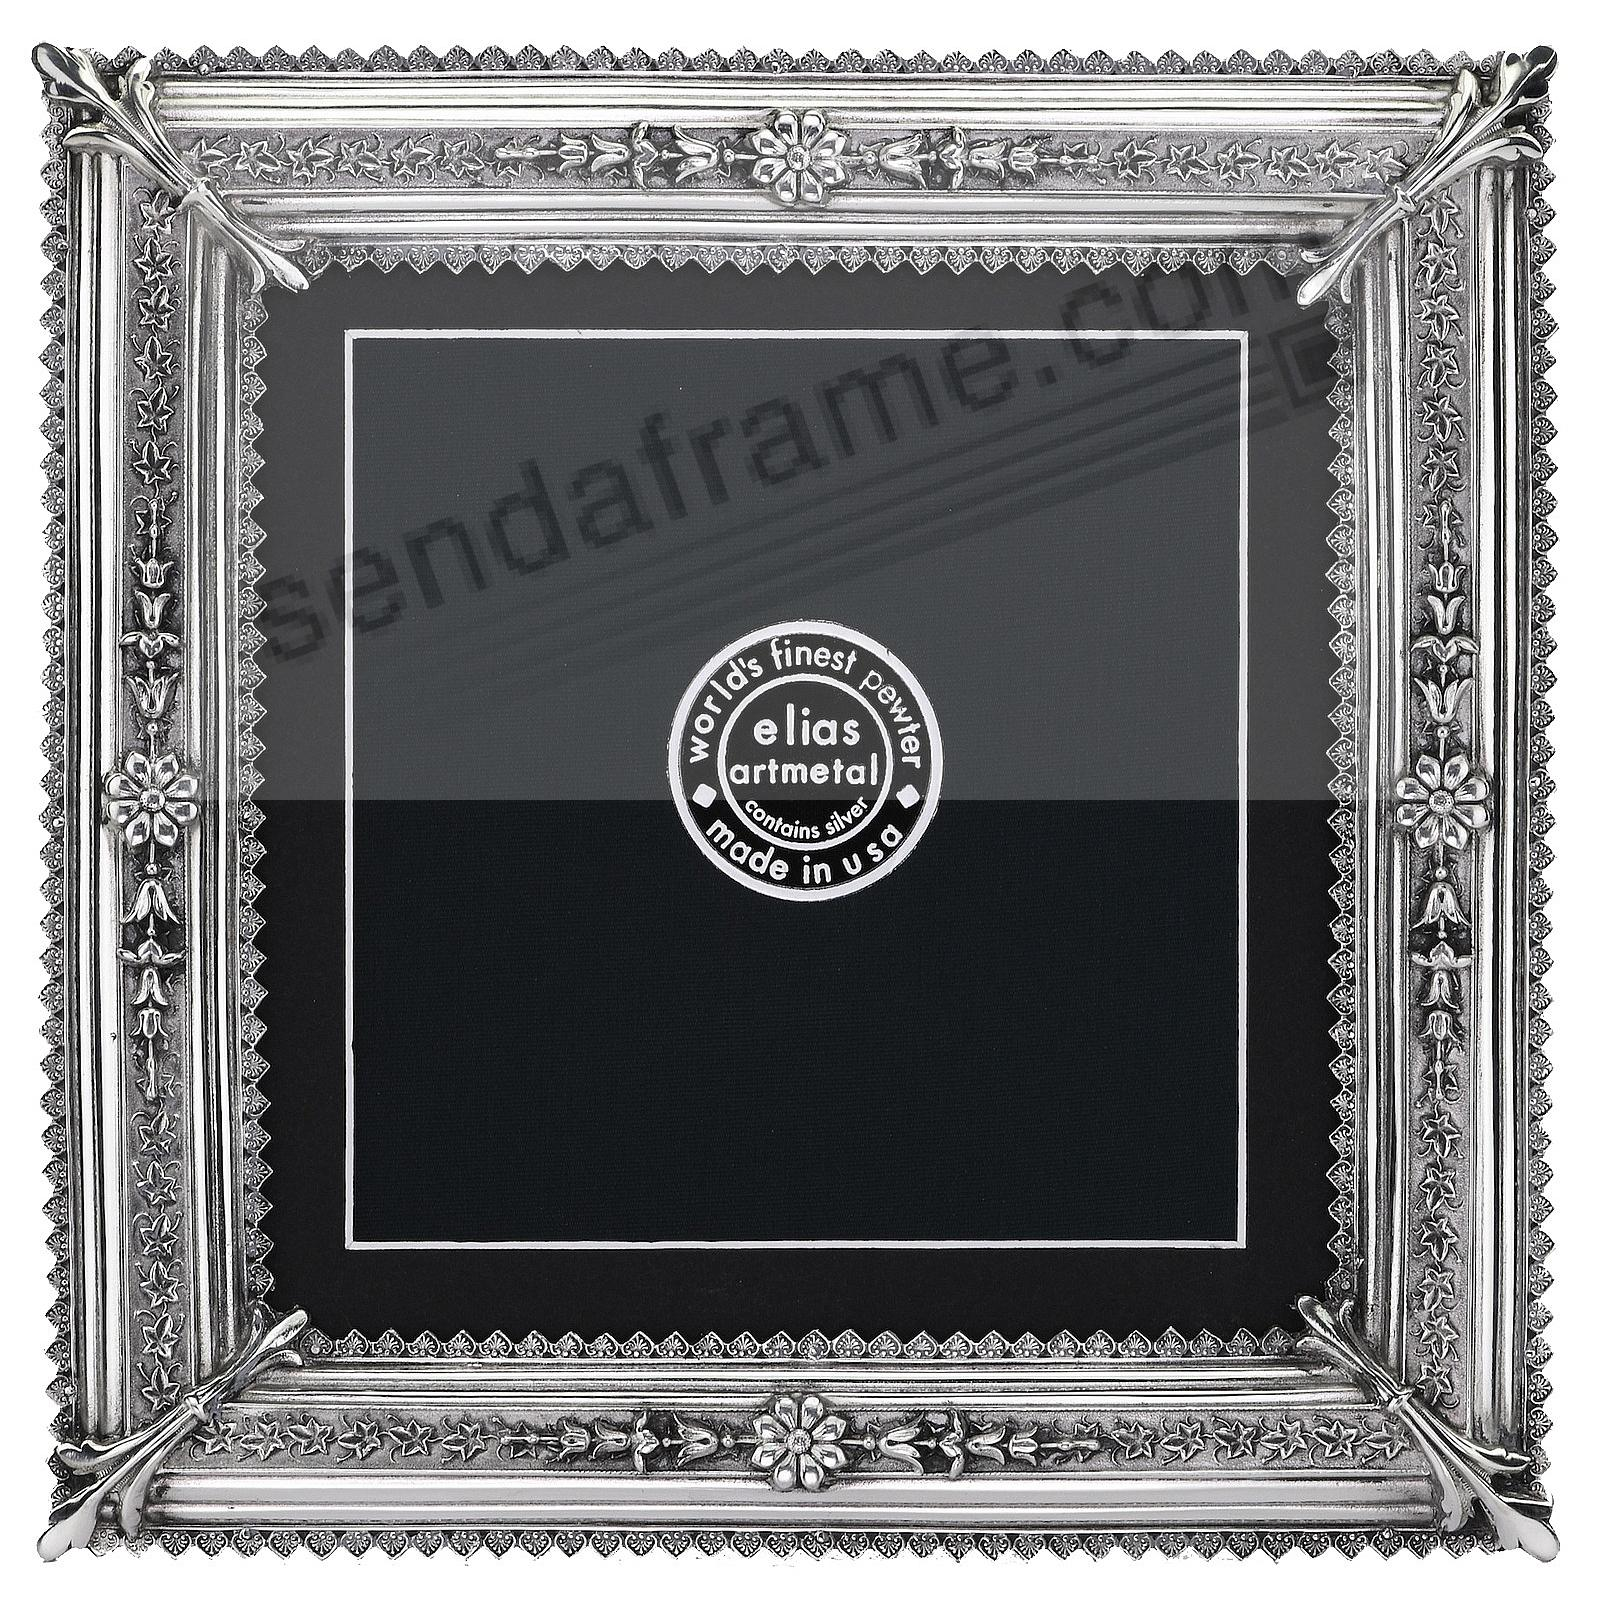 Proof-size Fine Pewter ROYALE 8x8/7½x7½ frame by Elias Artmetal®